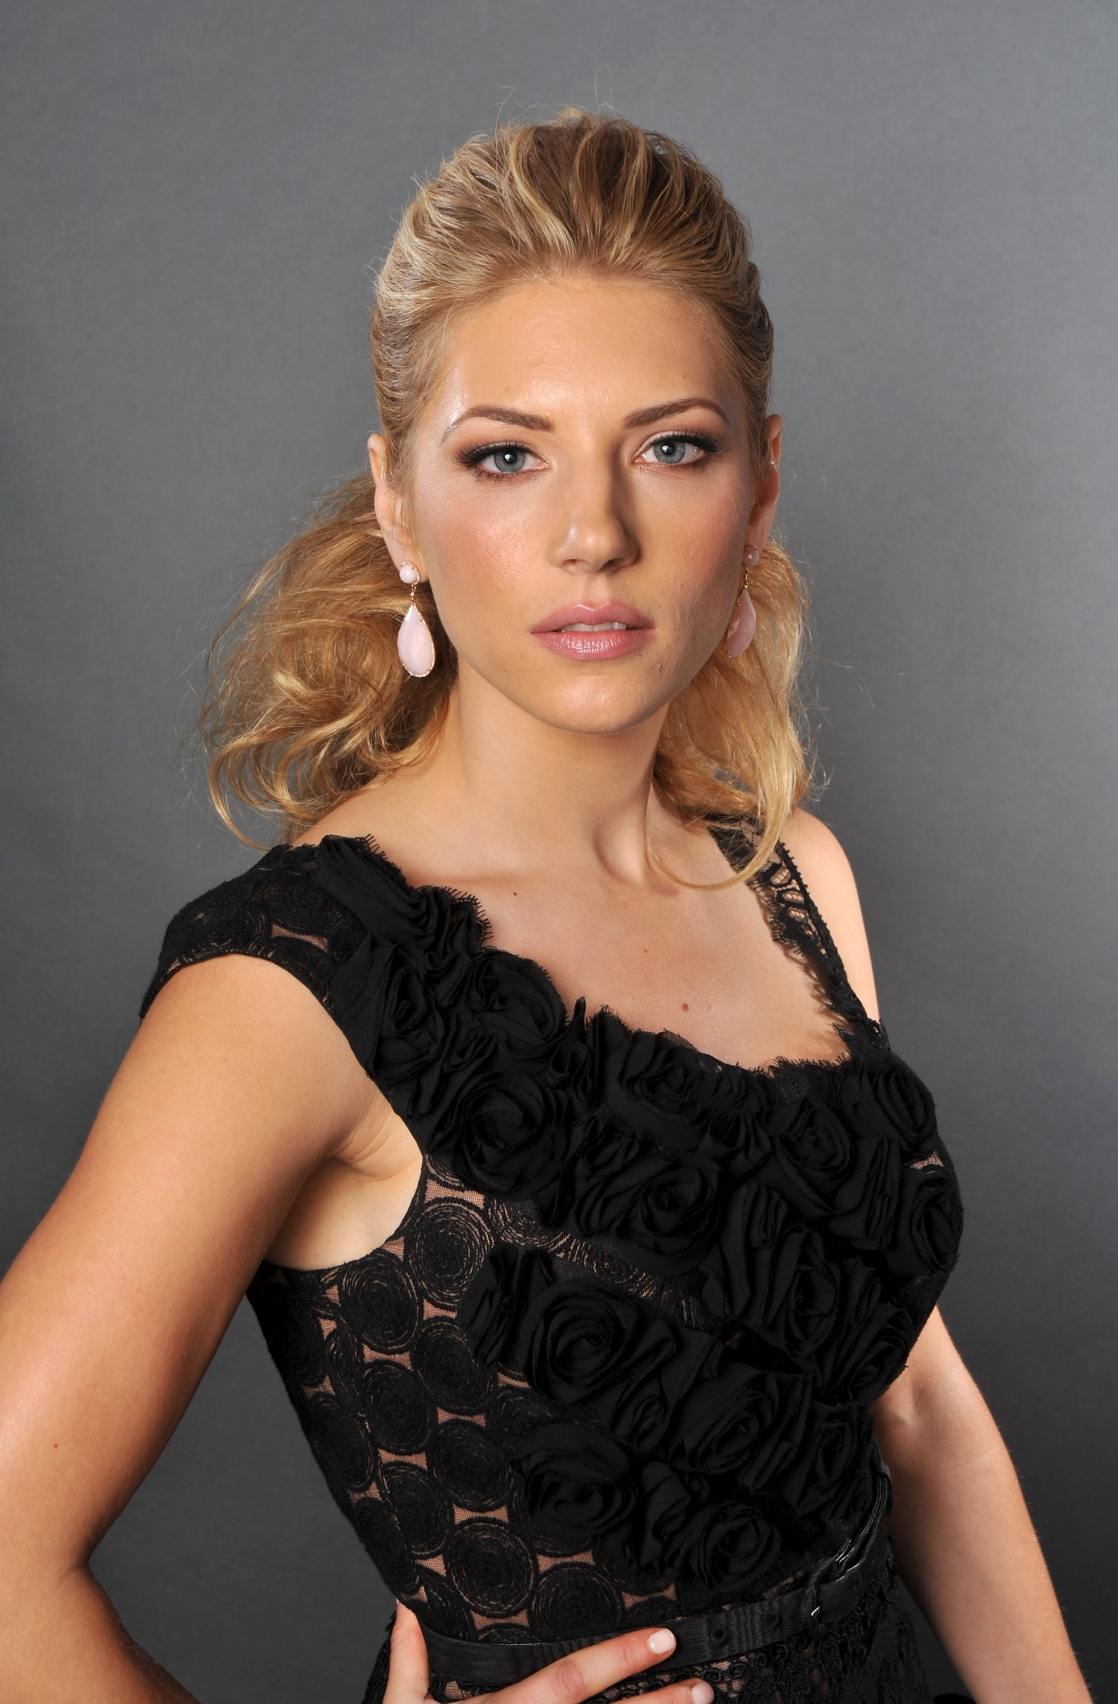 Katheryn Winnick Hot Photos, Sexy Topless Images Gallery